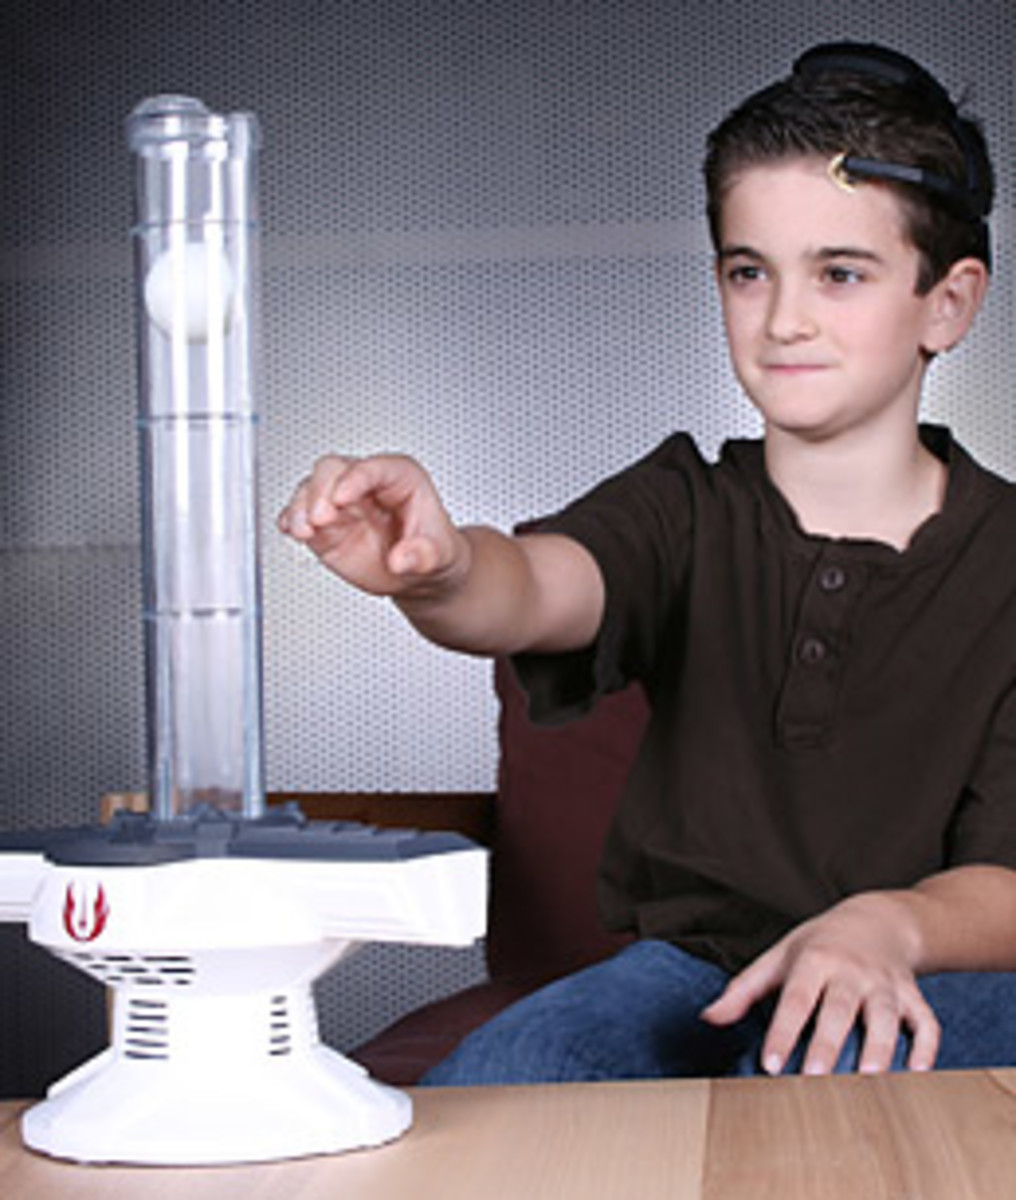 Mind Controlled Toy